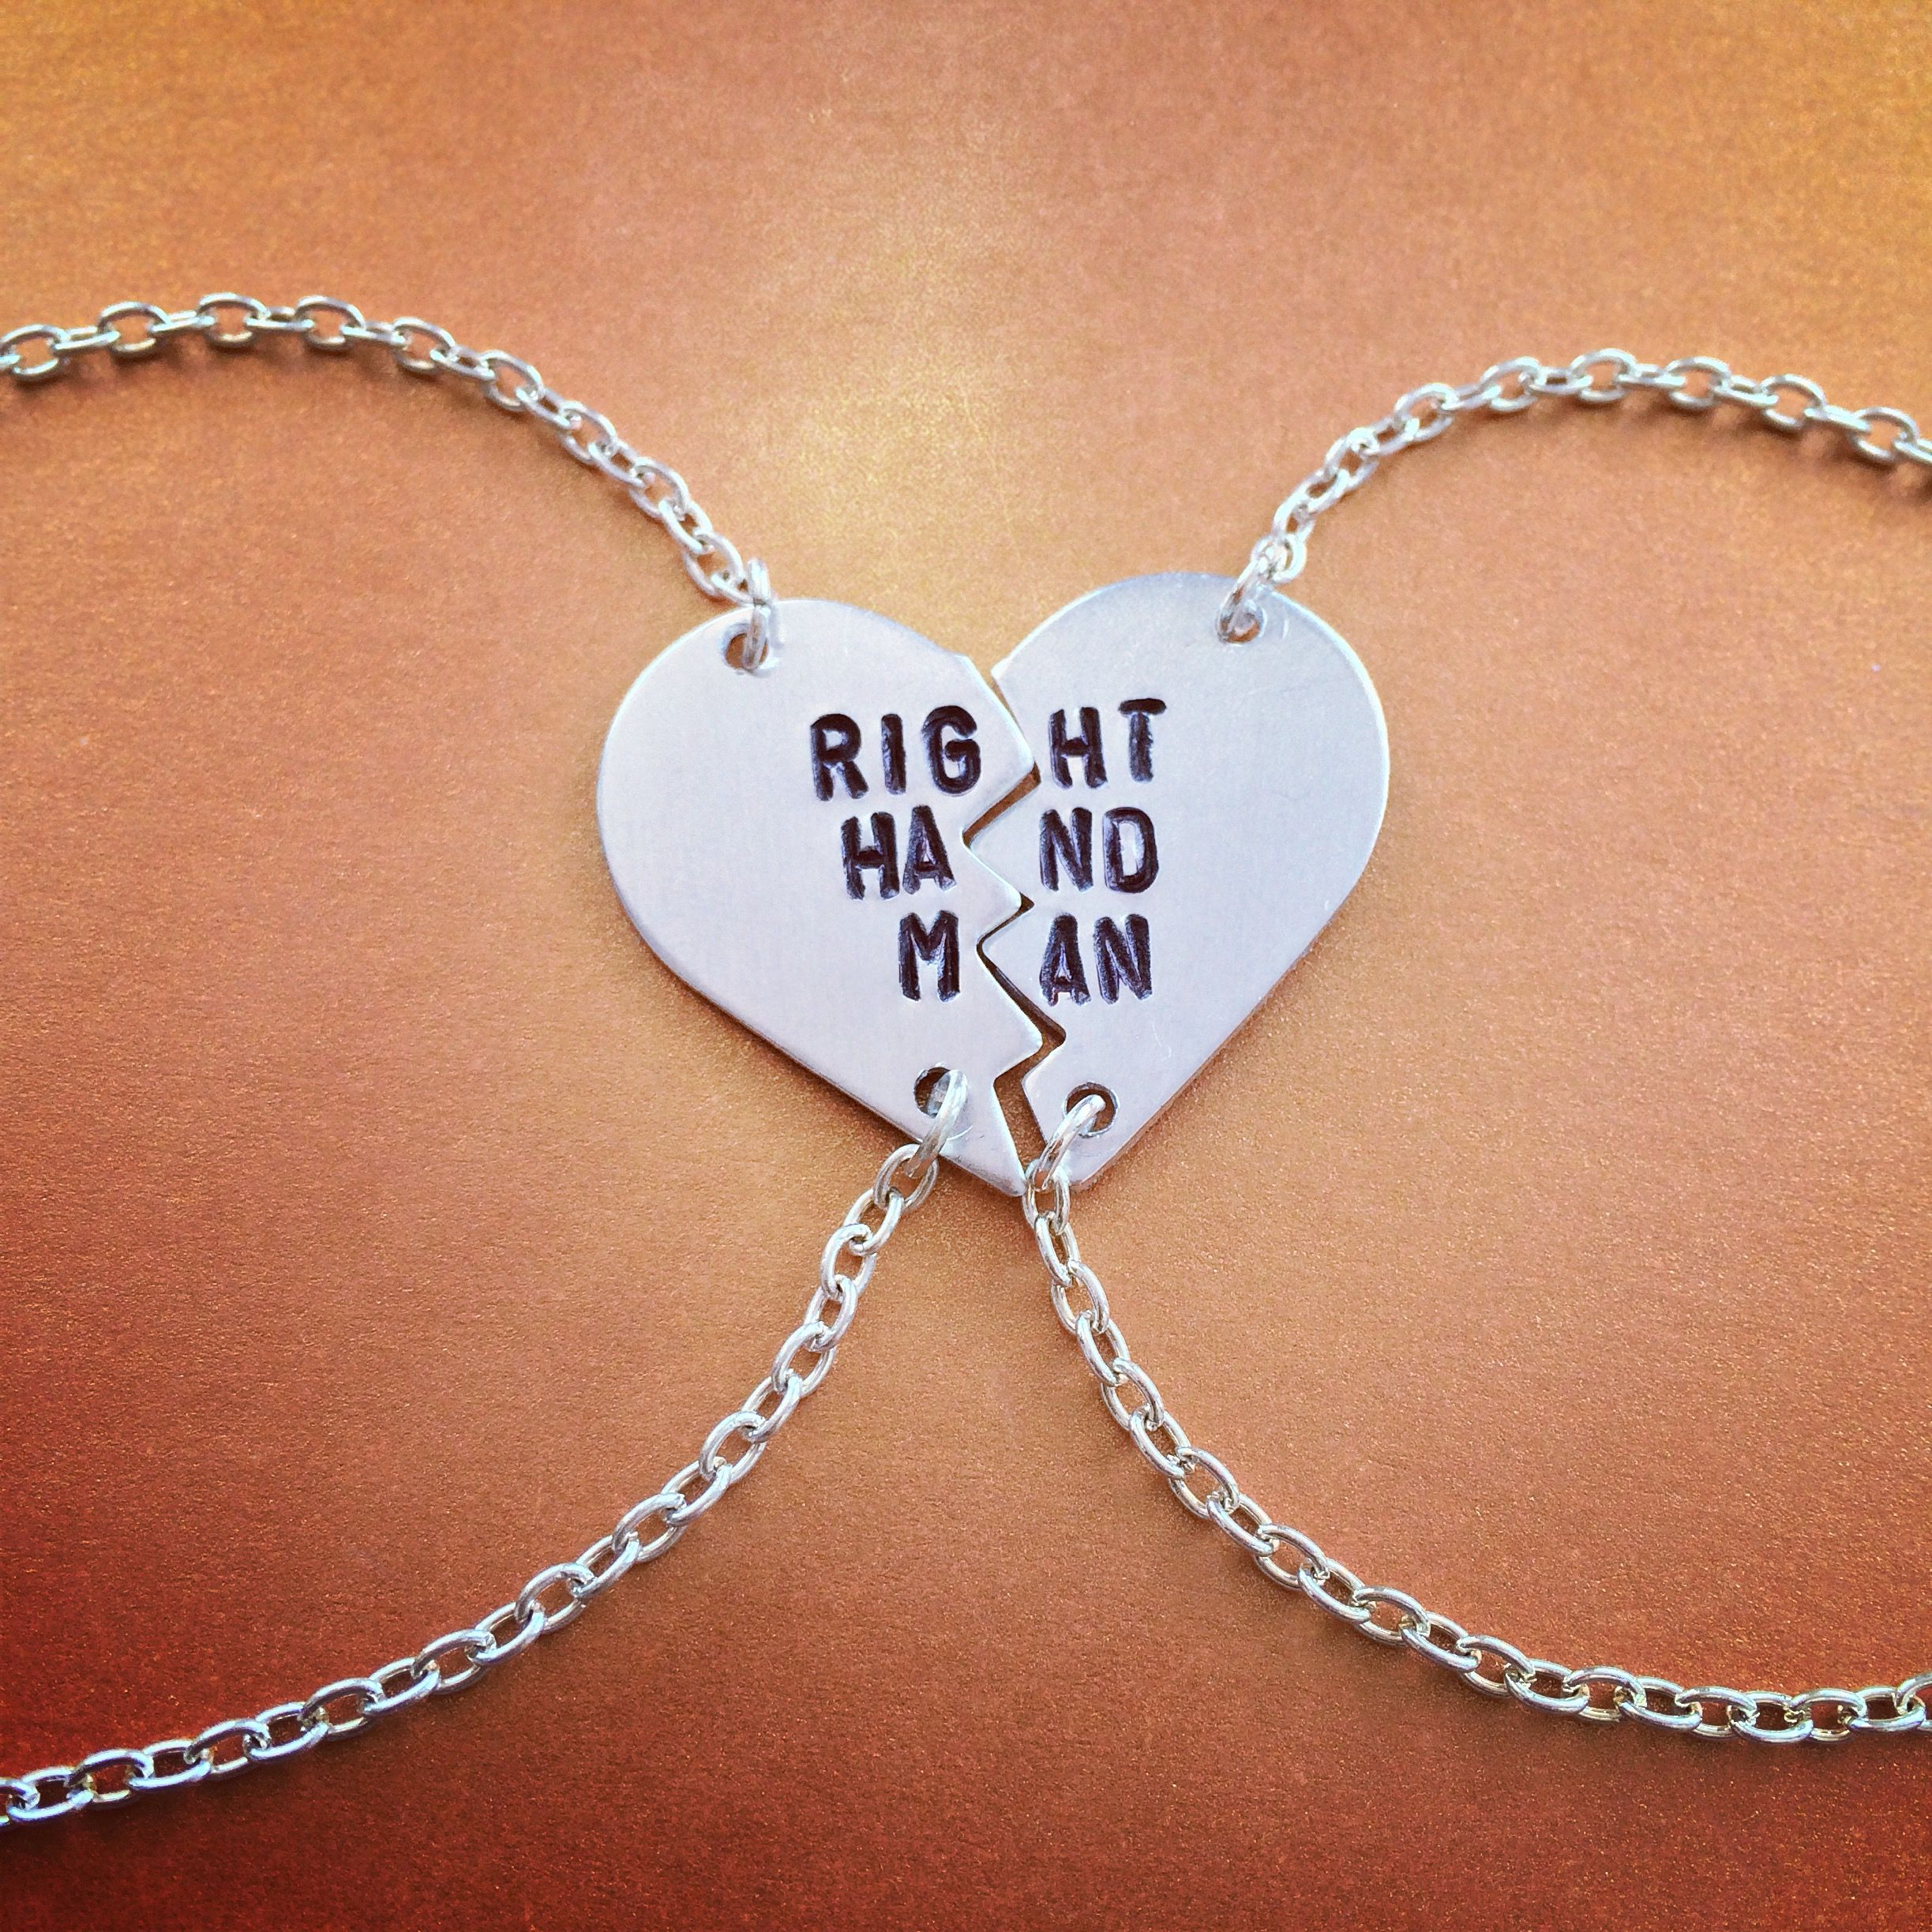 Clearance right hand man bff bracelets inspired by hamilton broadway